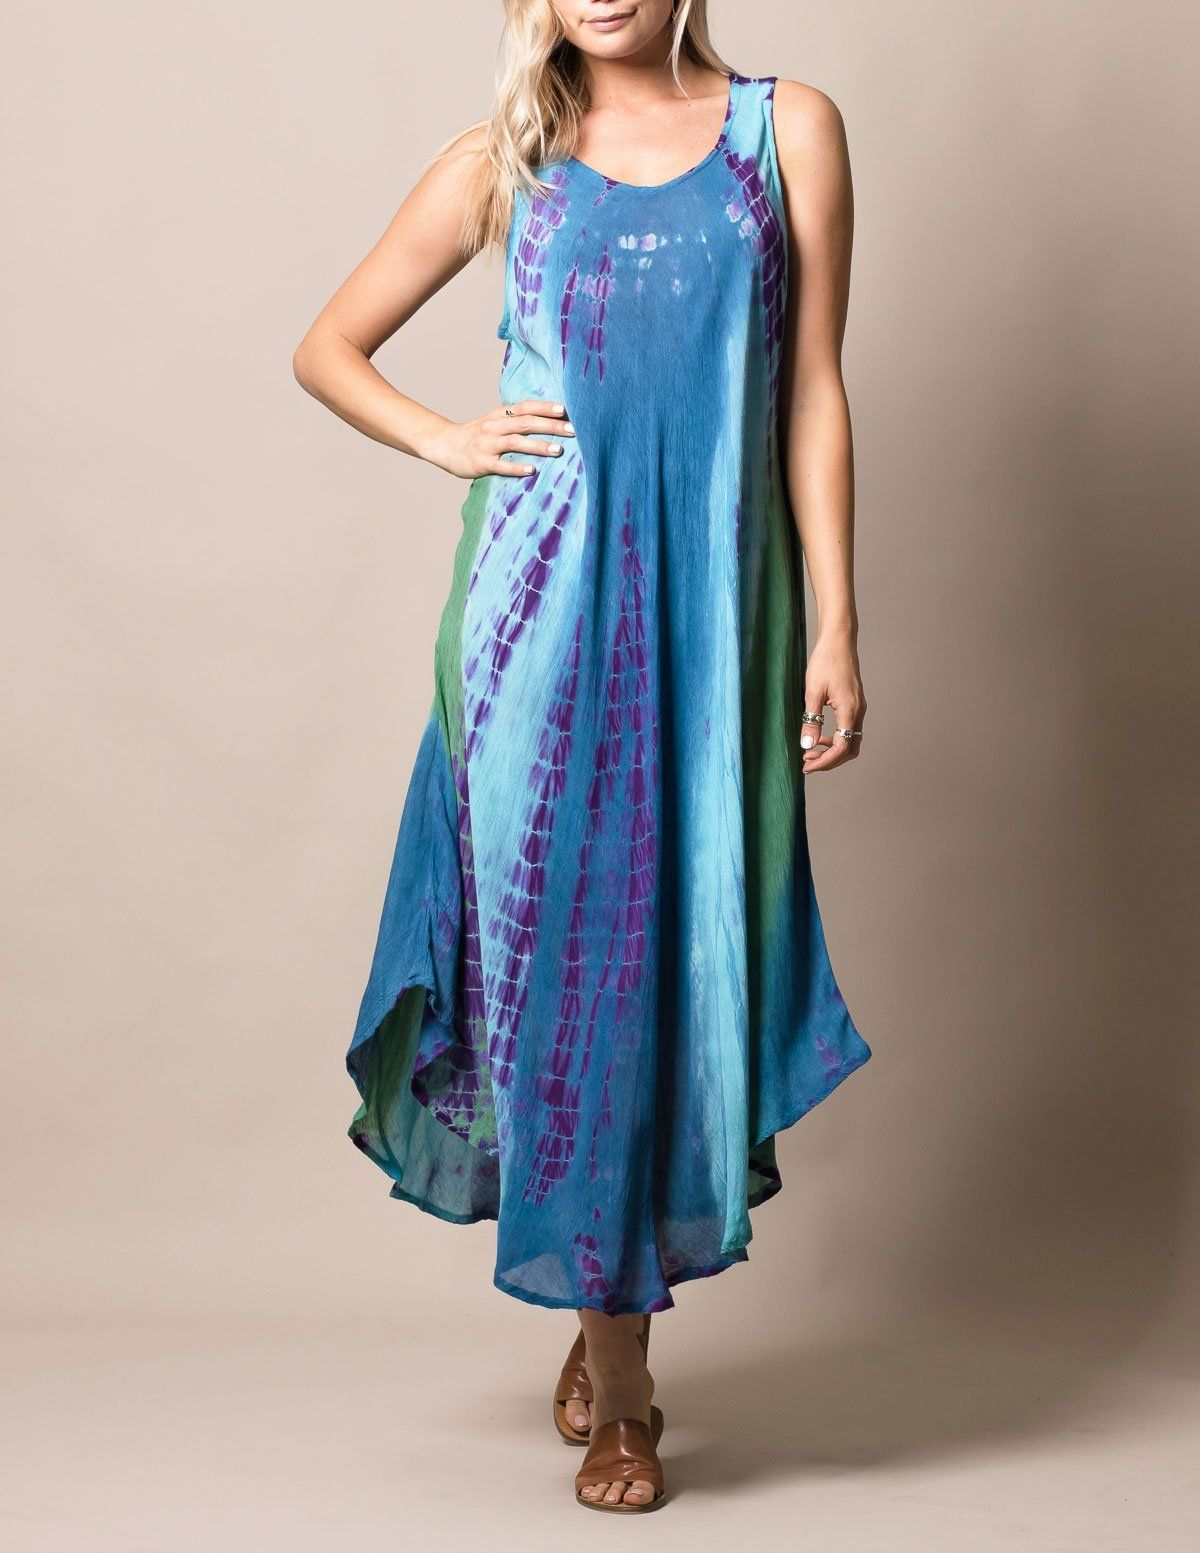 59614a84db7c Boho Breeze Tie-Dye Maxi Dress - Cosmic Blue